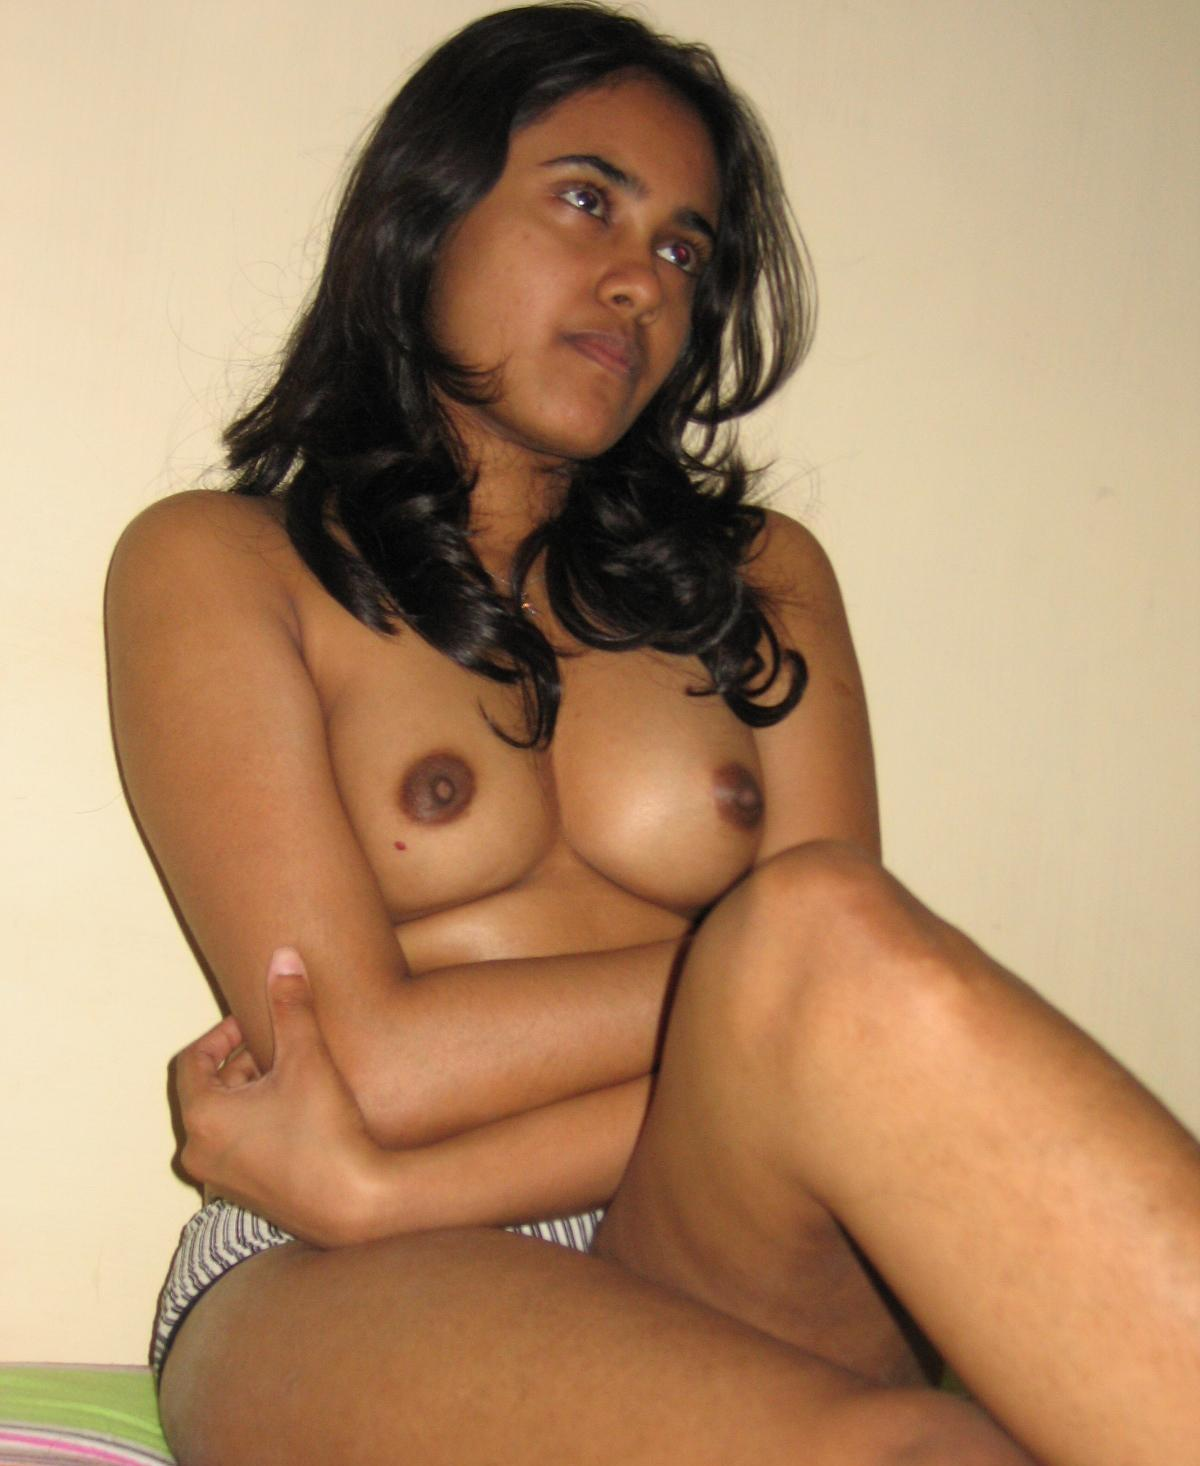 Indian girls nude crying pic, naked man gifs